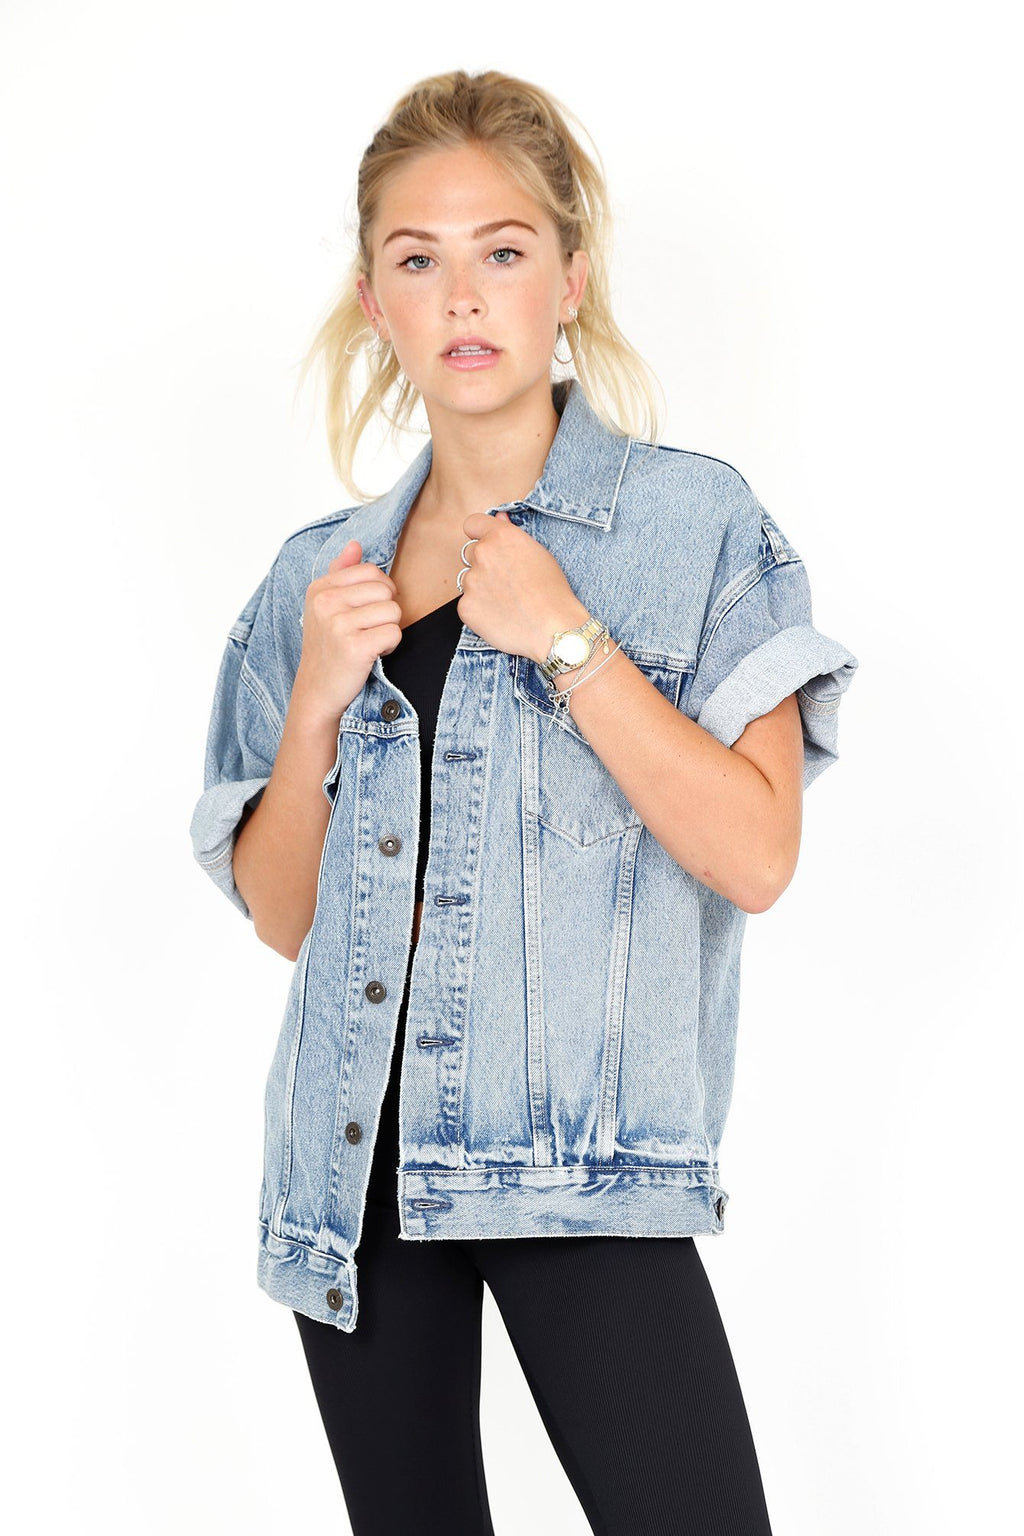 LEVIS | LMC Type III Cut Off Denim Jacket - Field Blues